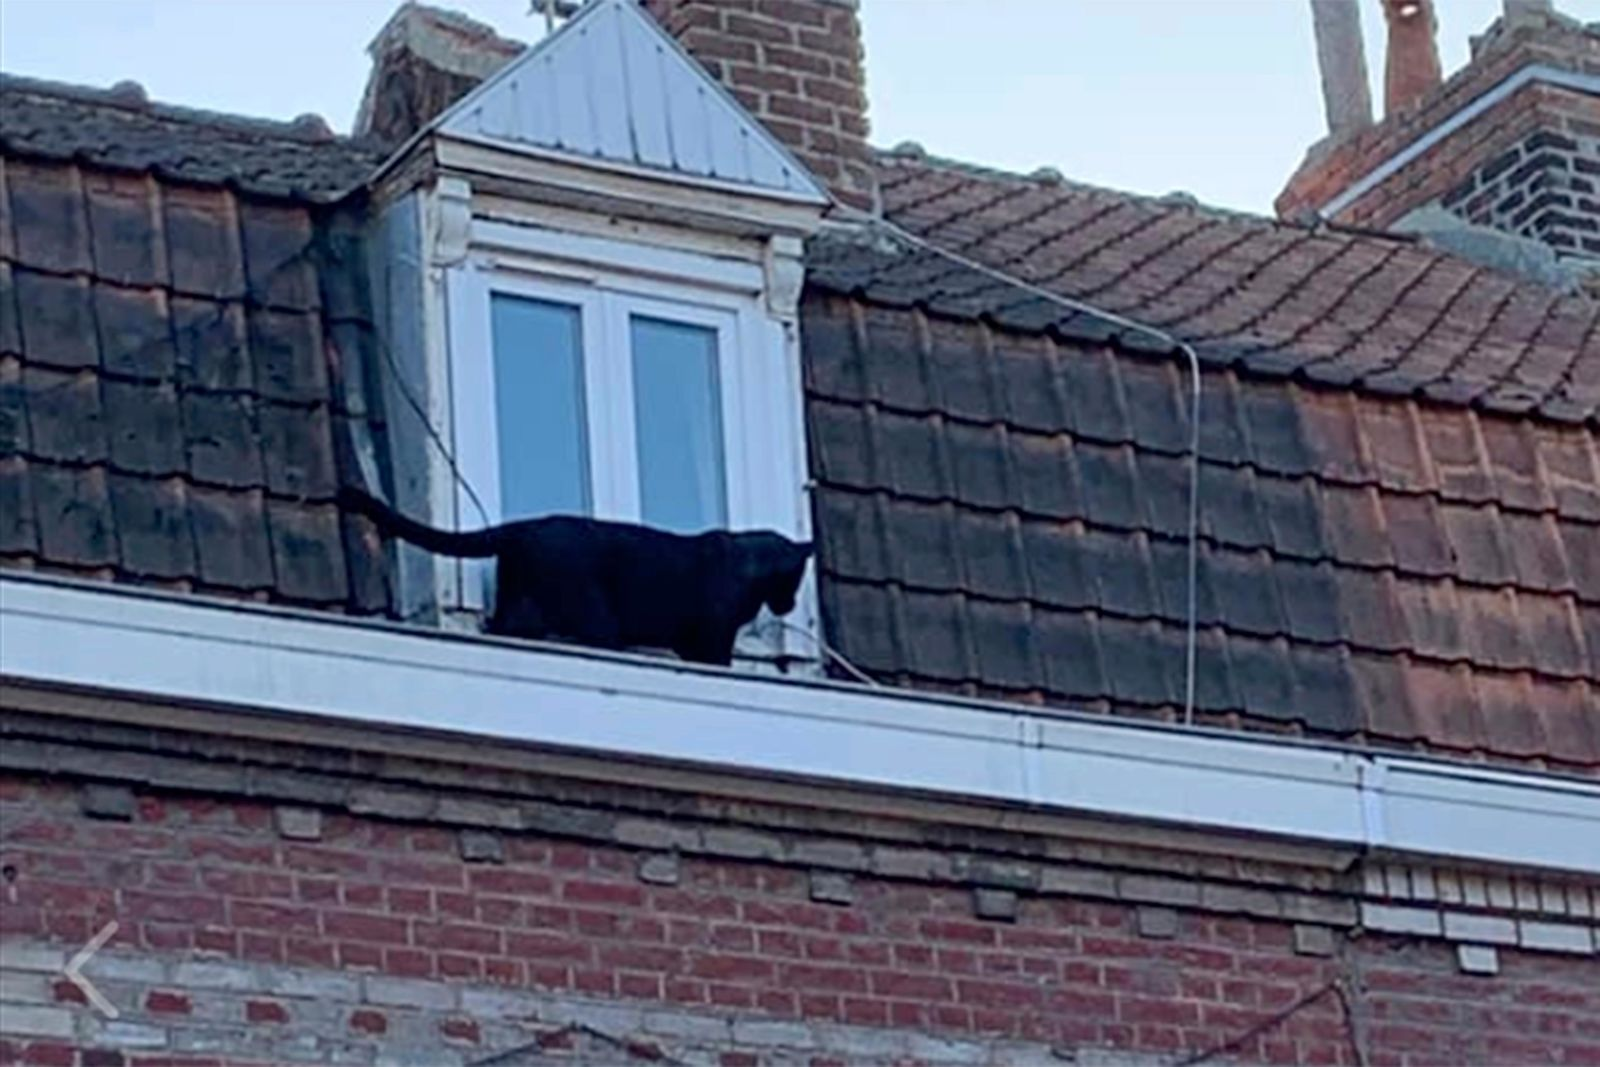 This provided provided by the Fire Brigade of Northern France a panther walks on the gutter of a building in Armentieres, northern France, Wednesday Sept.18, 2019. (Sapeurs-Pompiers du Nord via AP)